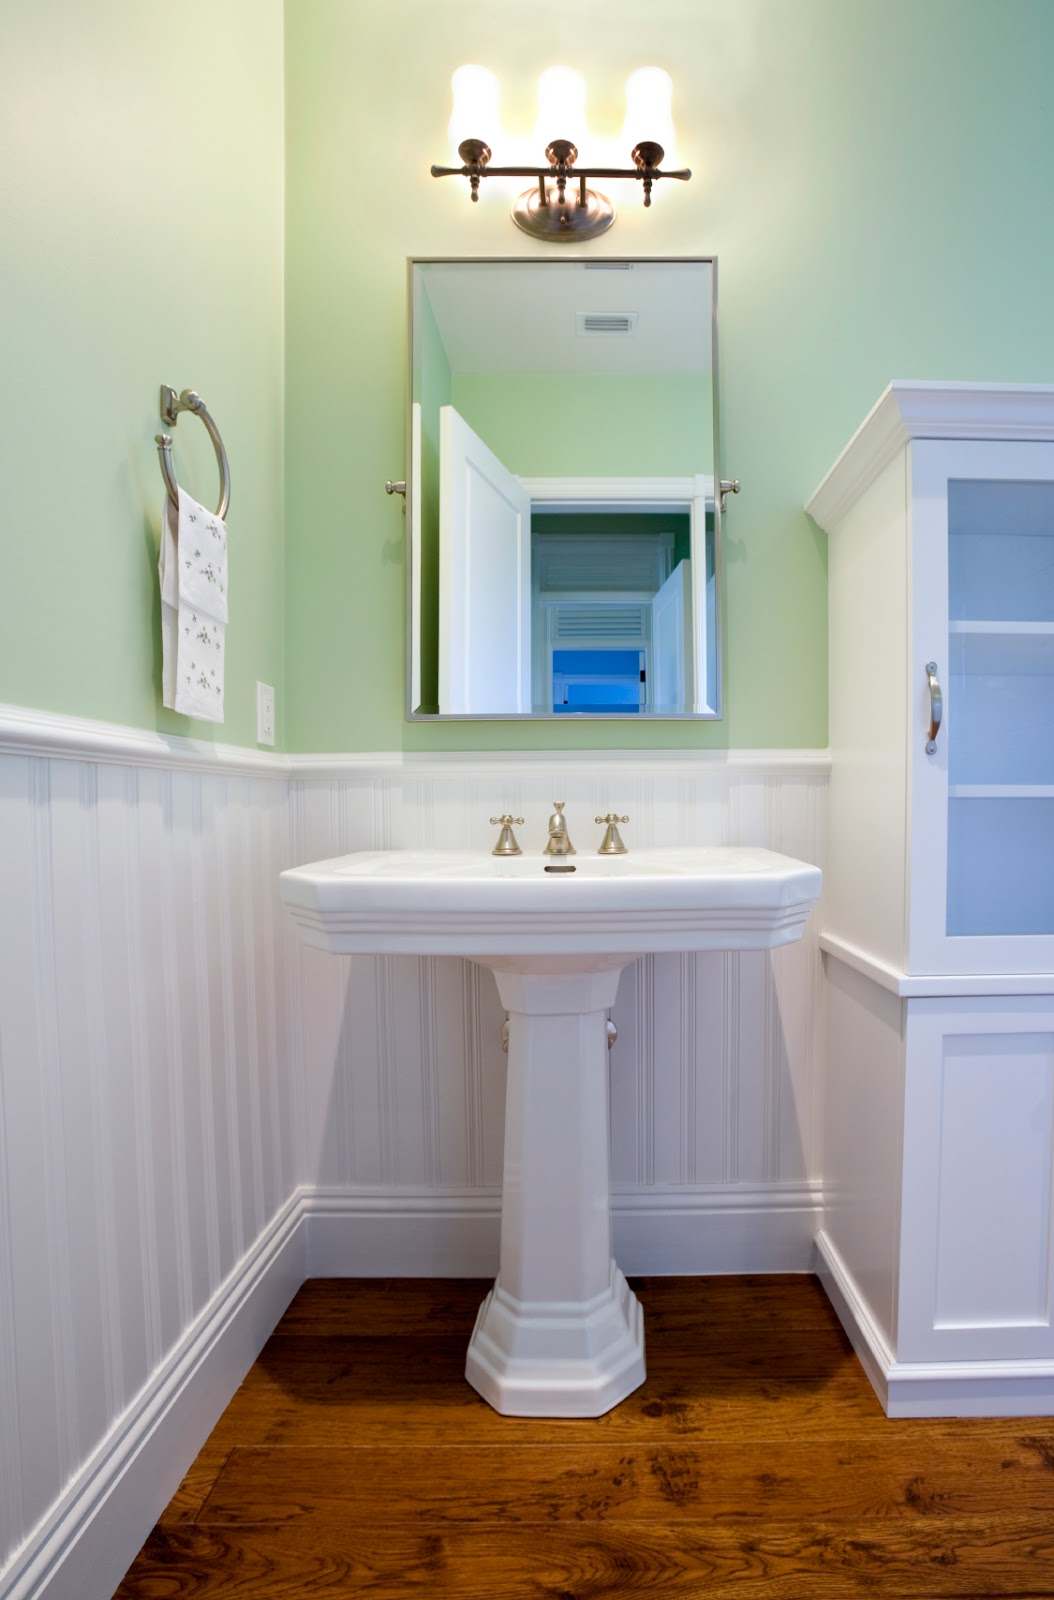 Re Bath Of Richmond Tips For Remodeling A Half Bathroom